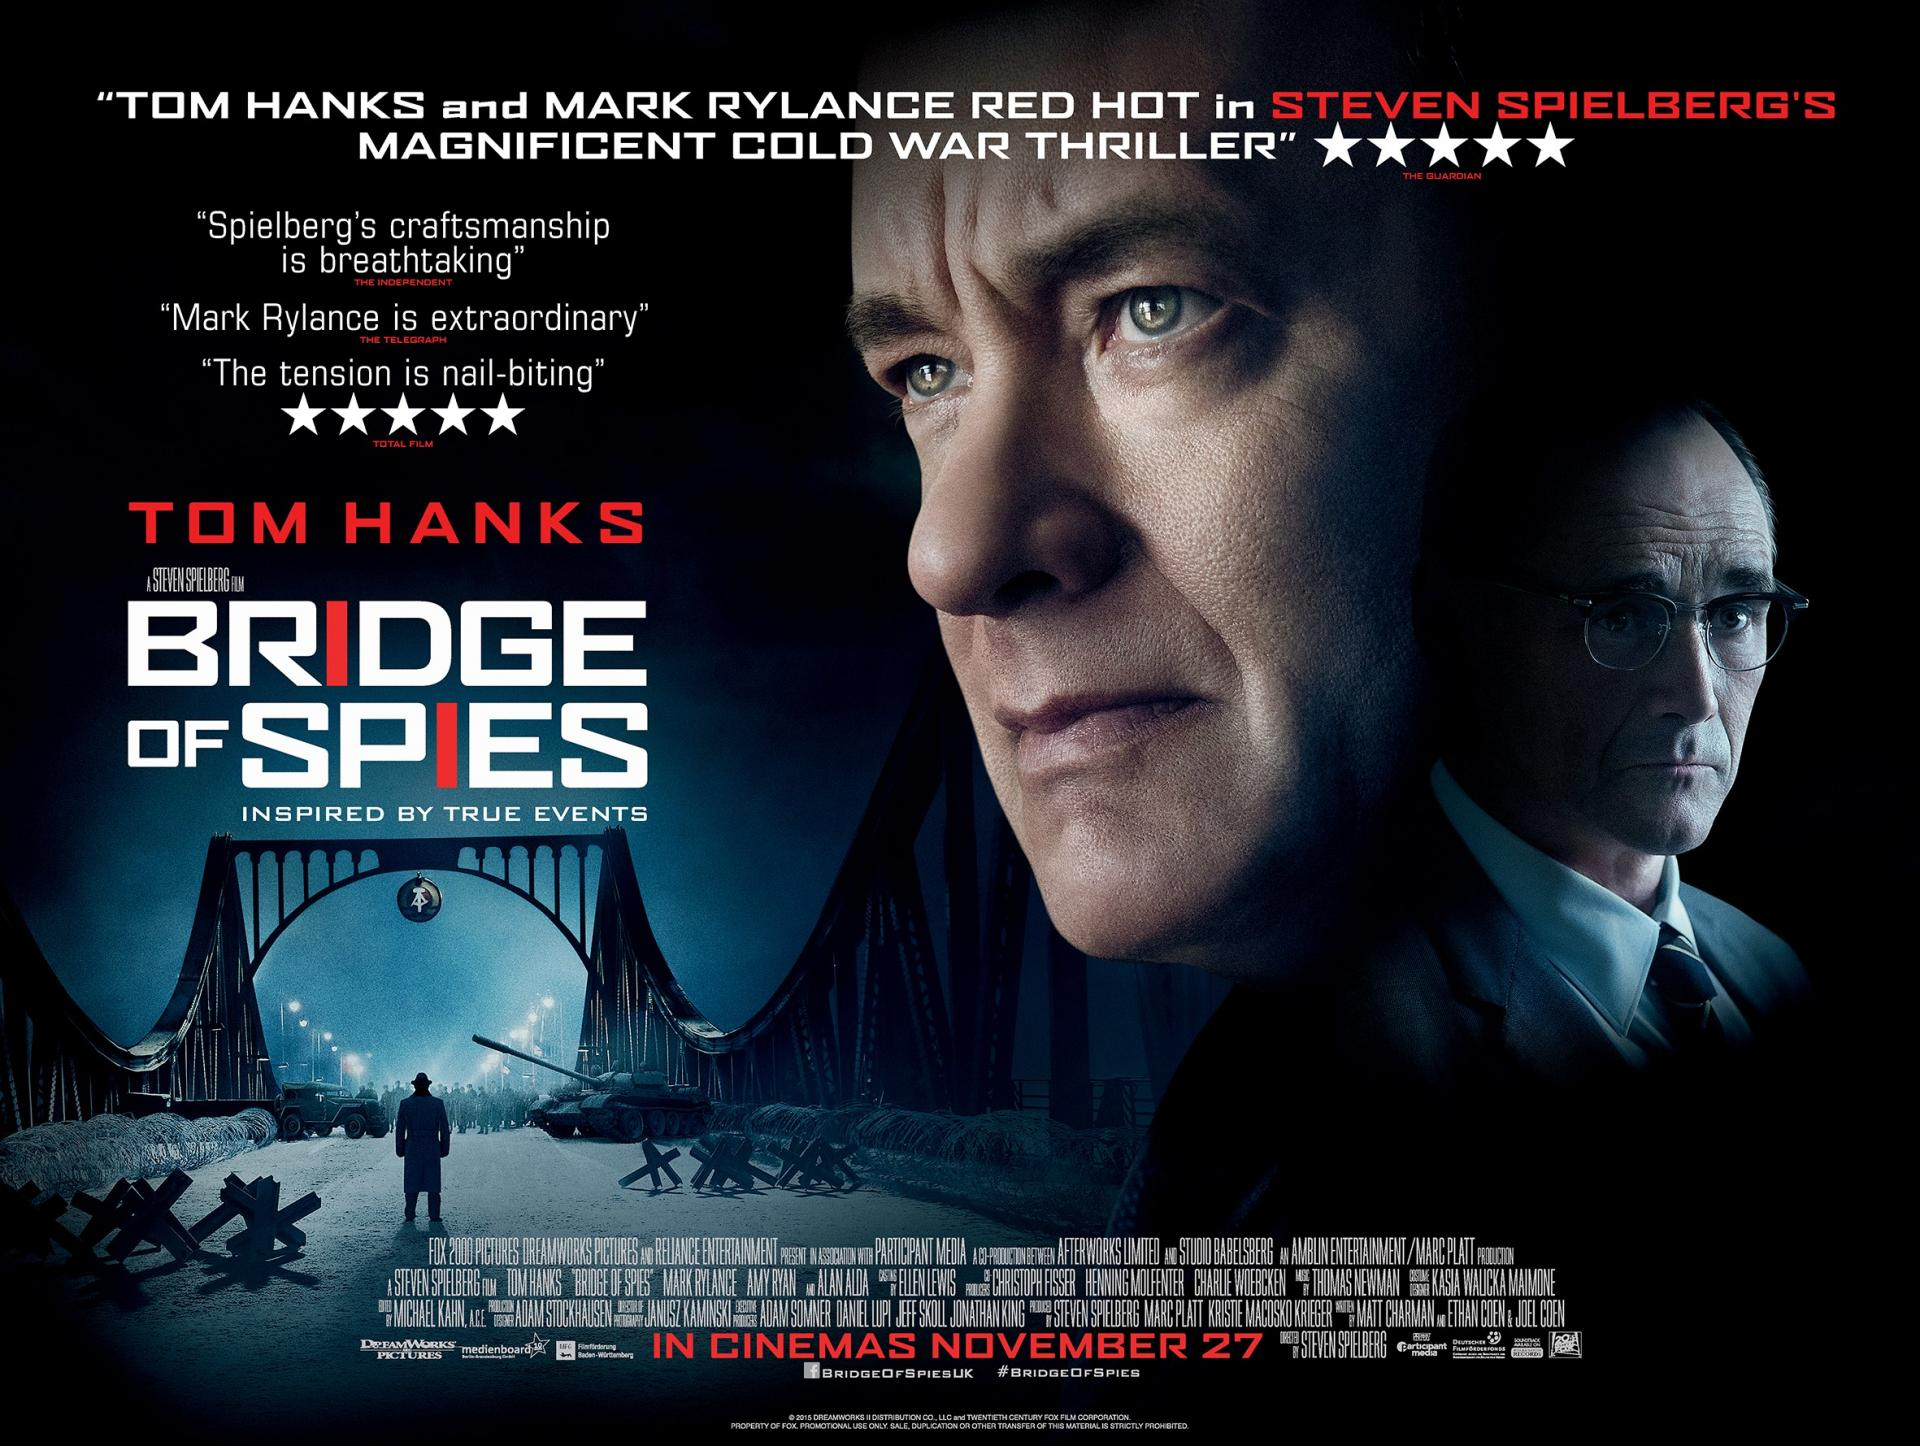 Stiahni si Filmy s titulkama Most spionu / Bridge of Spies (2015)[720p] = CSFD 81%